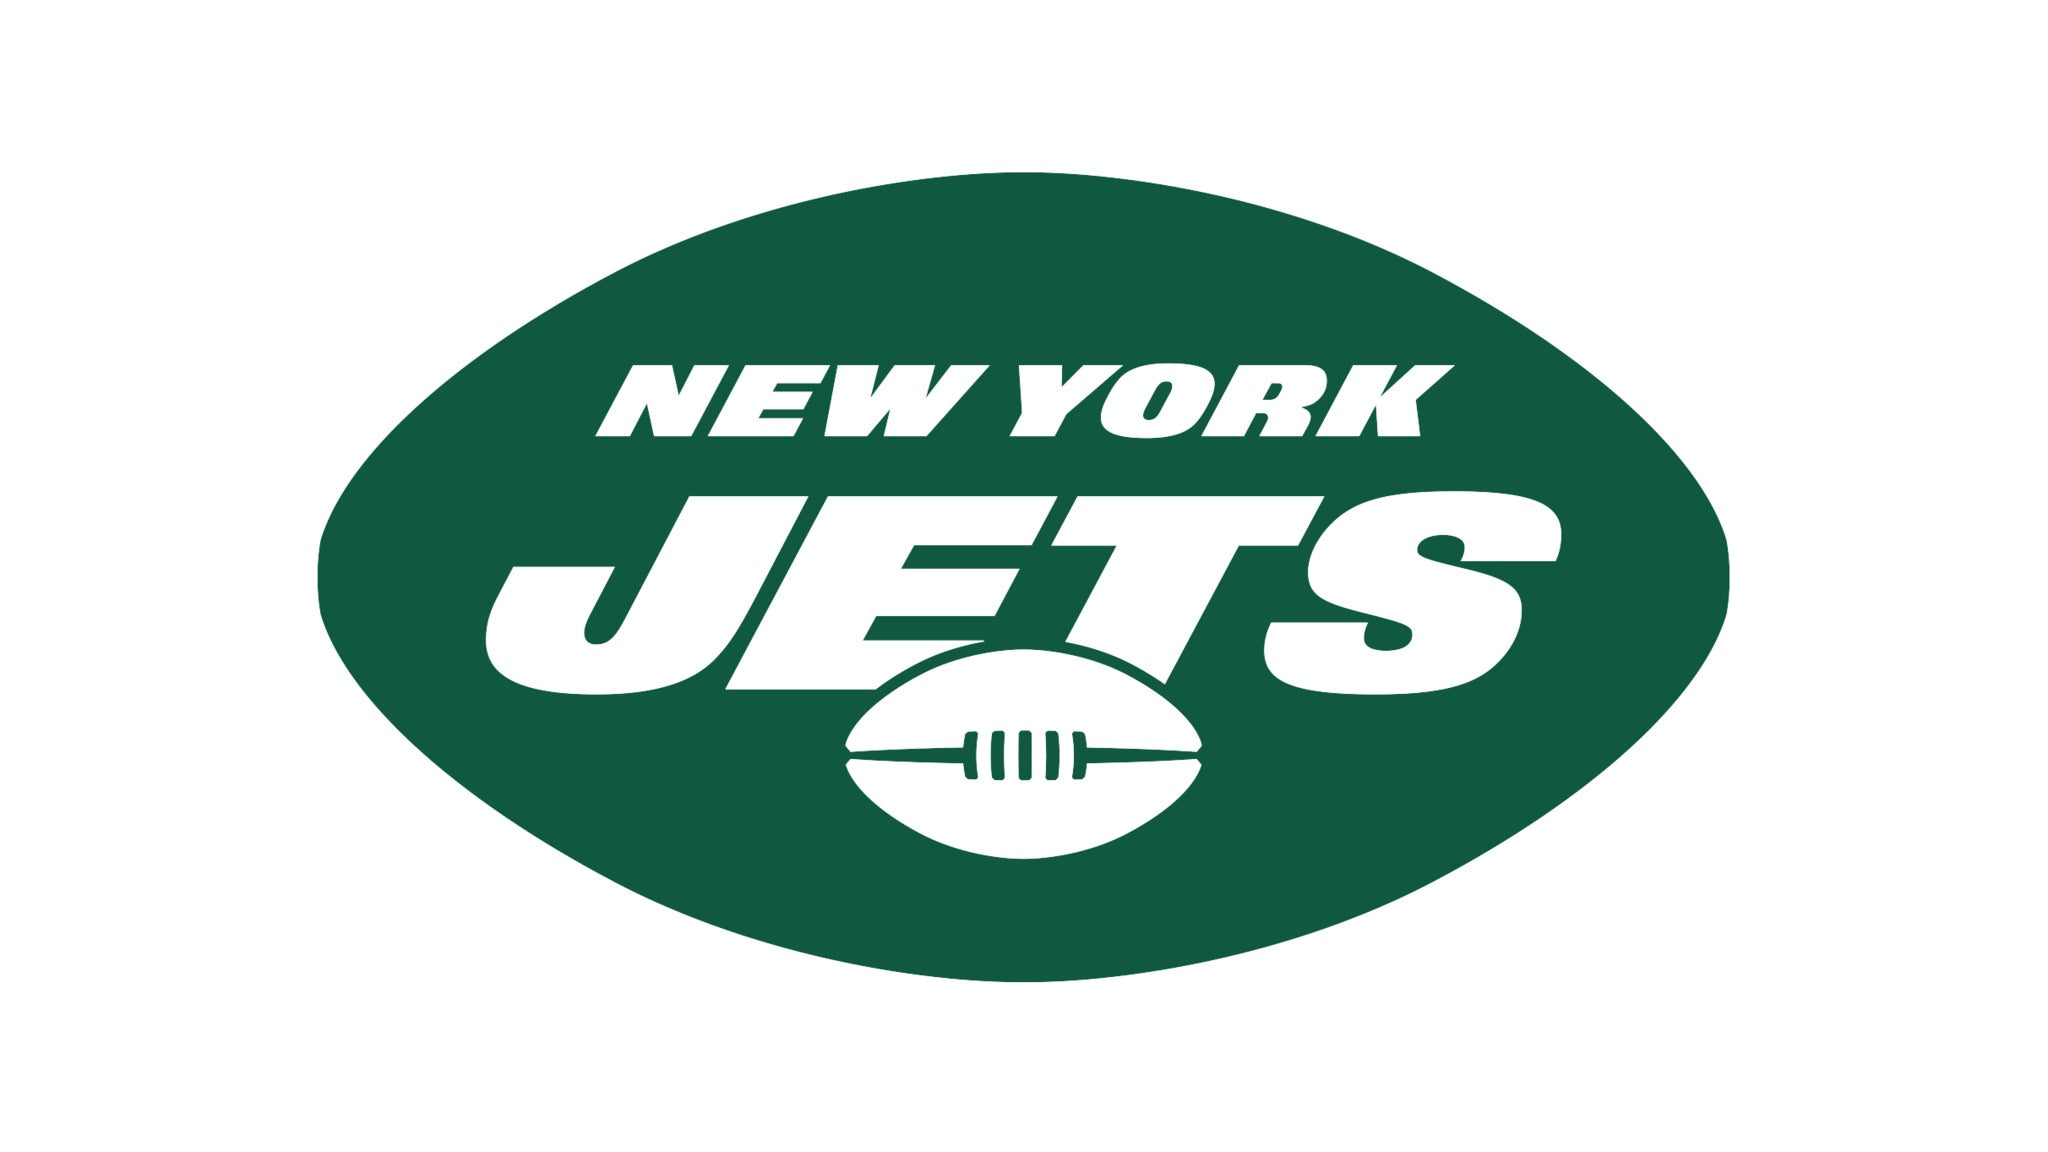 New York Jets vs. Dallas Cowboys